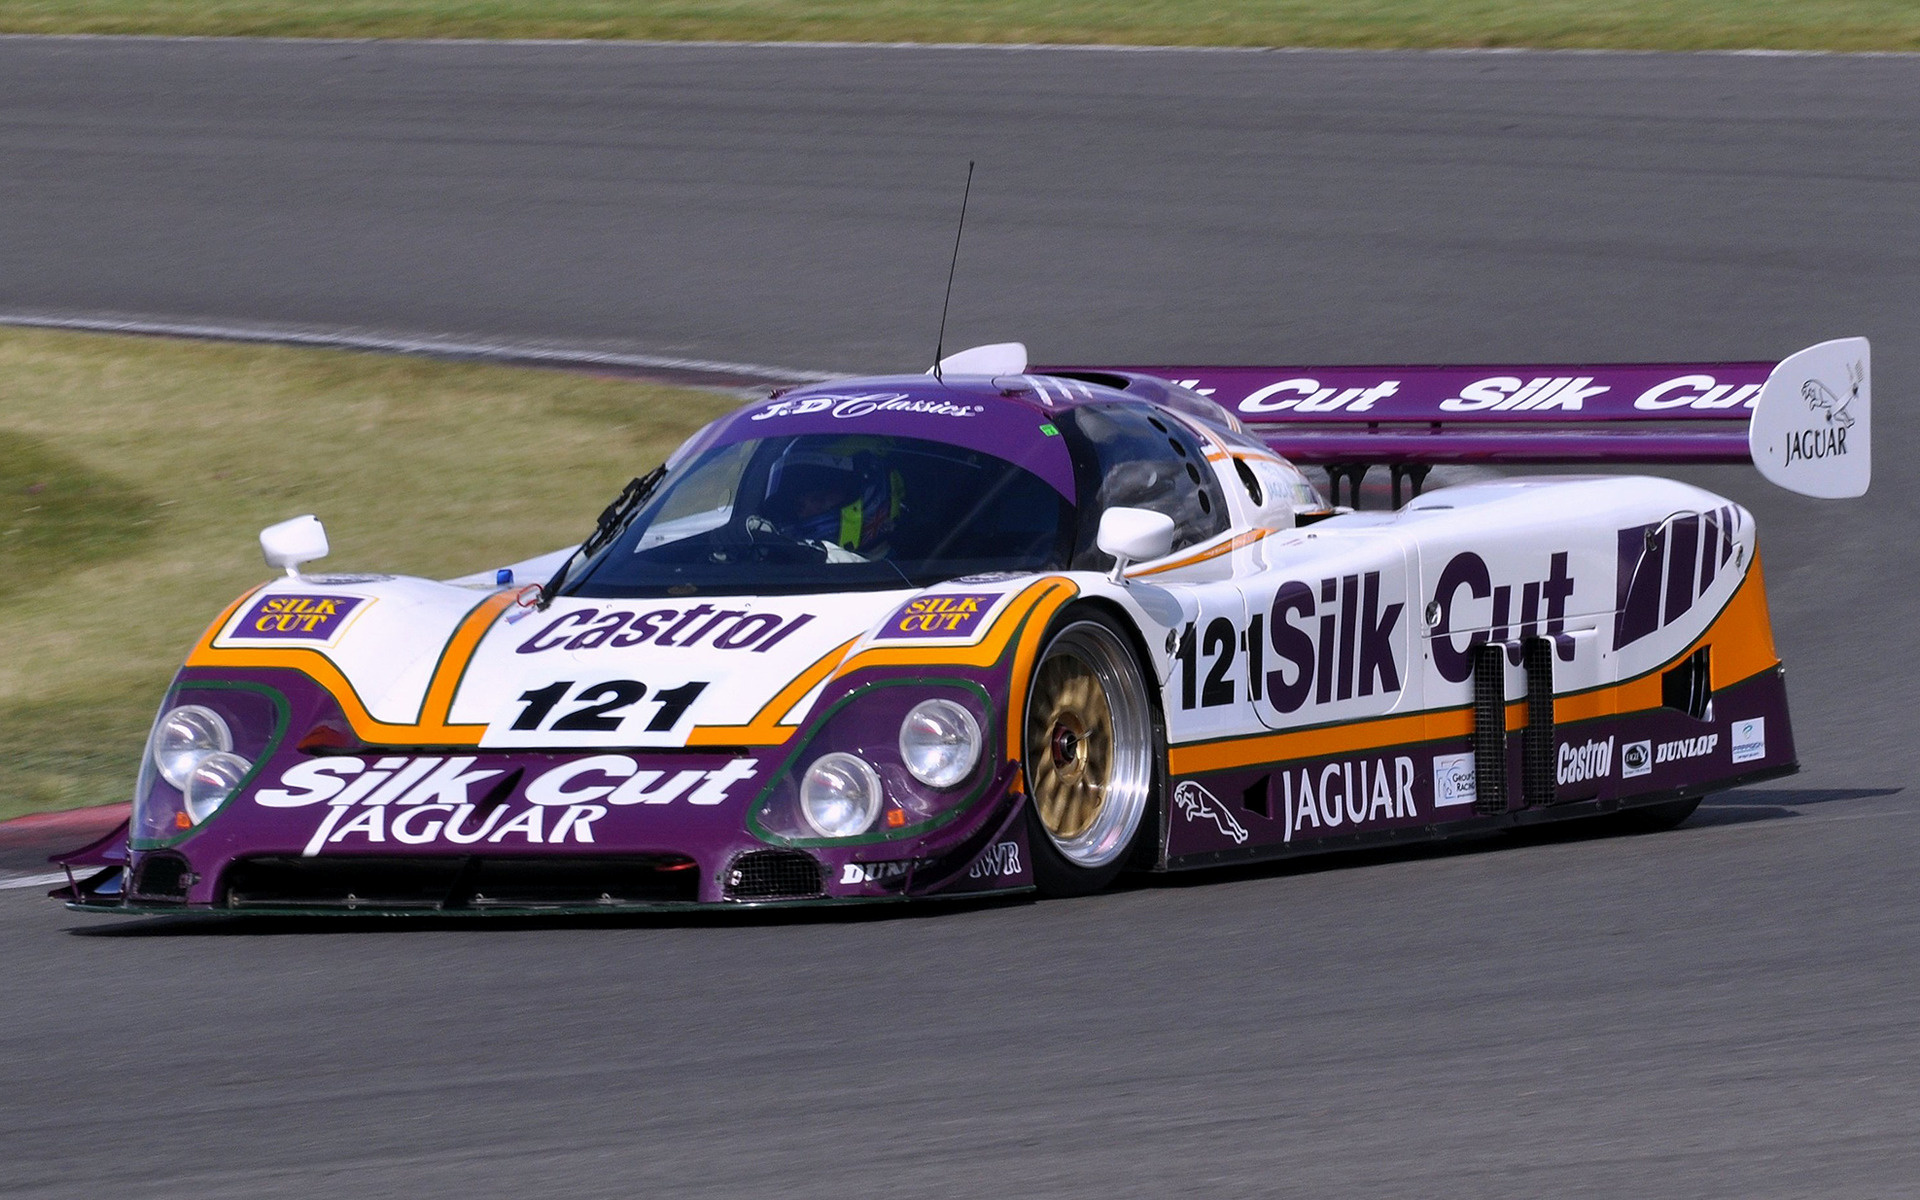 Jaguar Xjr 9 1988 Wallpapers And Hd Images Car Pixel HD Wallpapers Download free images and photos [musssic.tk]